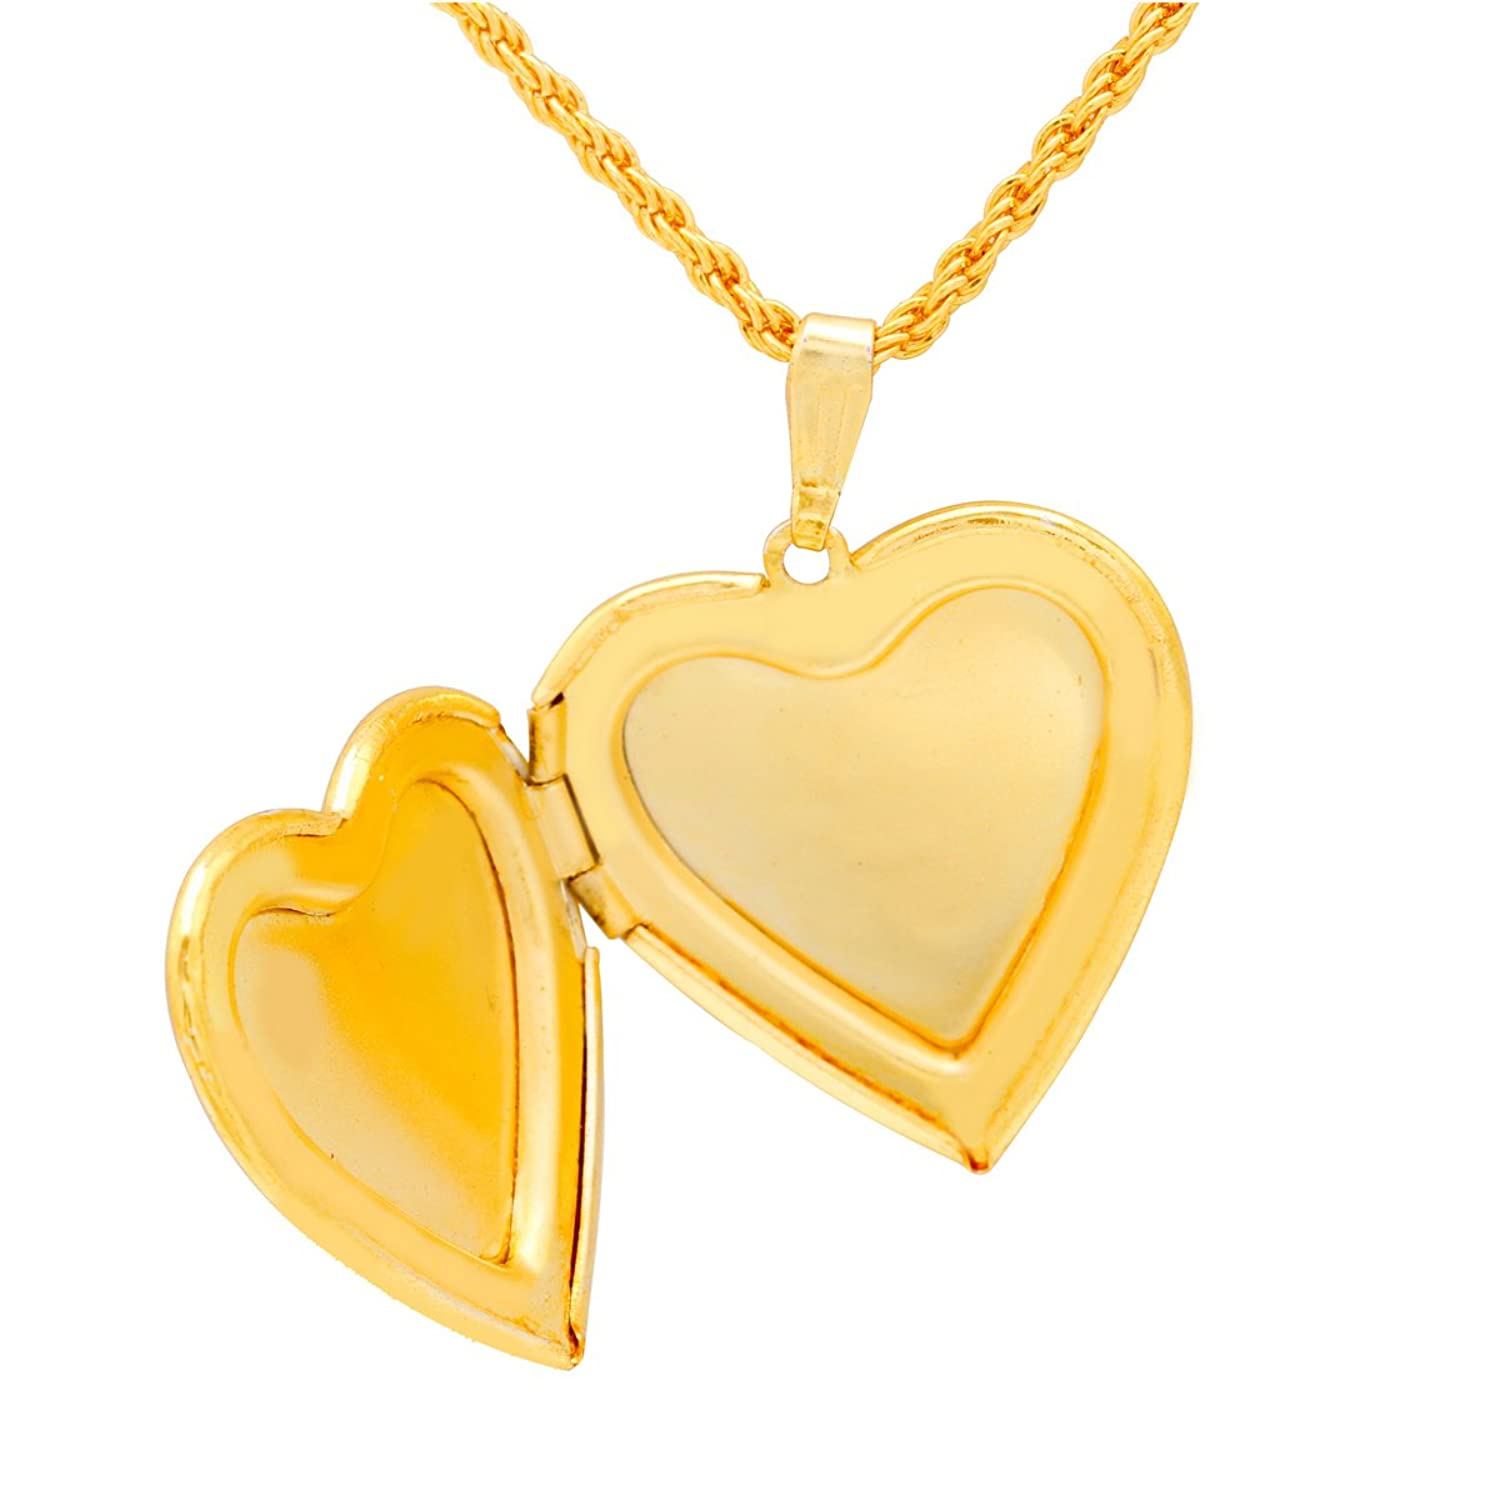 products and j heart loved great foundry jewellery singapore faith for gifts ones idea gift shaped love based hope silver pendant co costume necklace